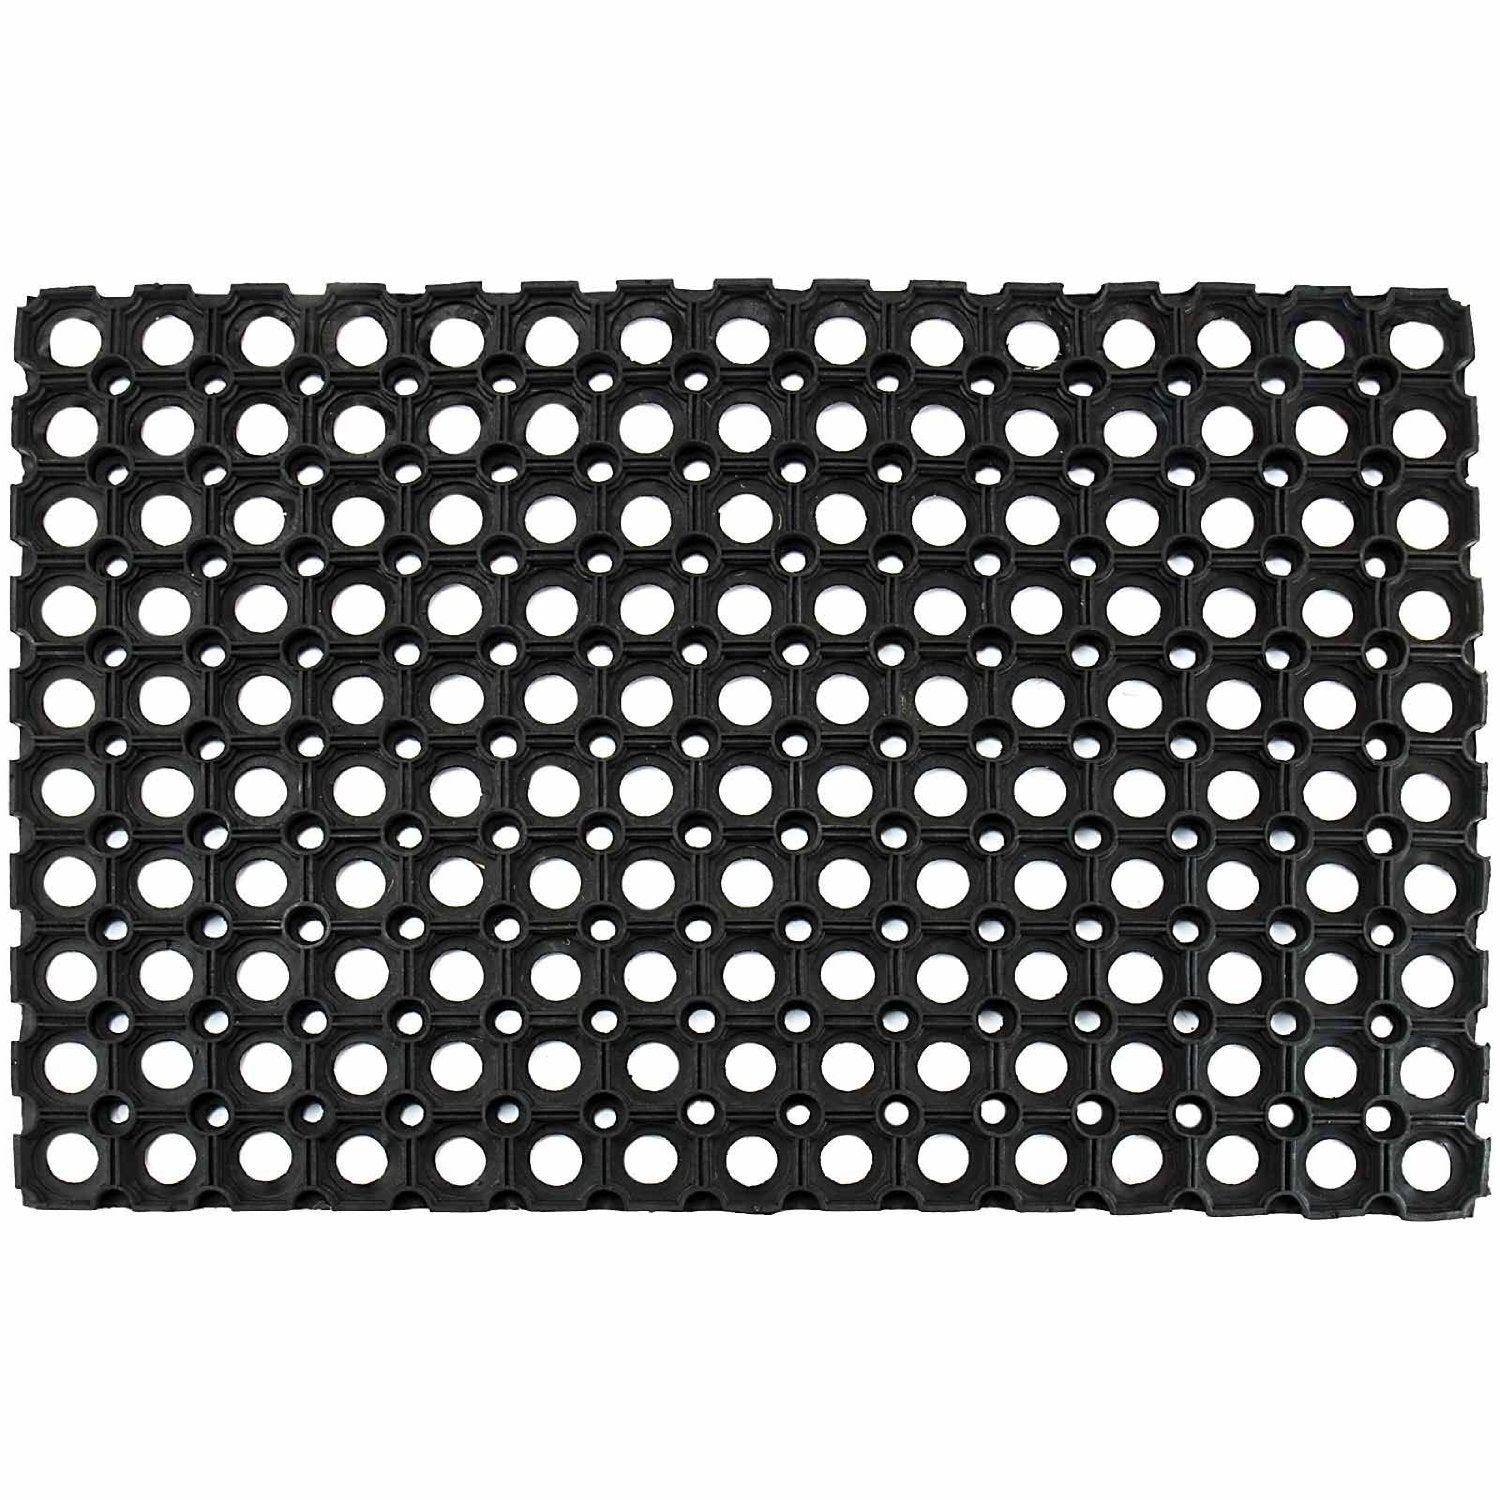 Rubber Doormat | Rug Maters | Free UK Delivery